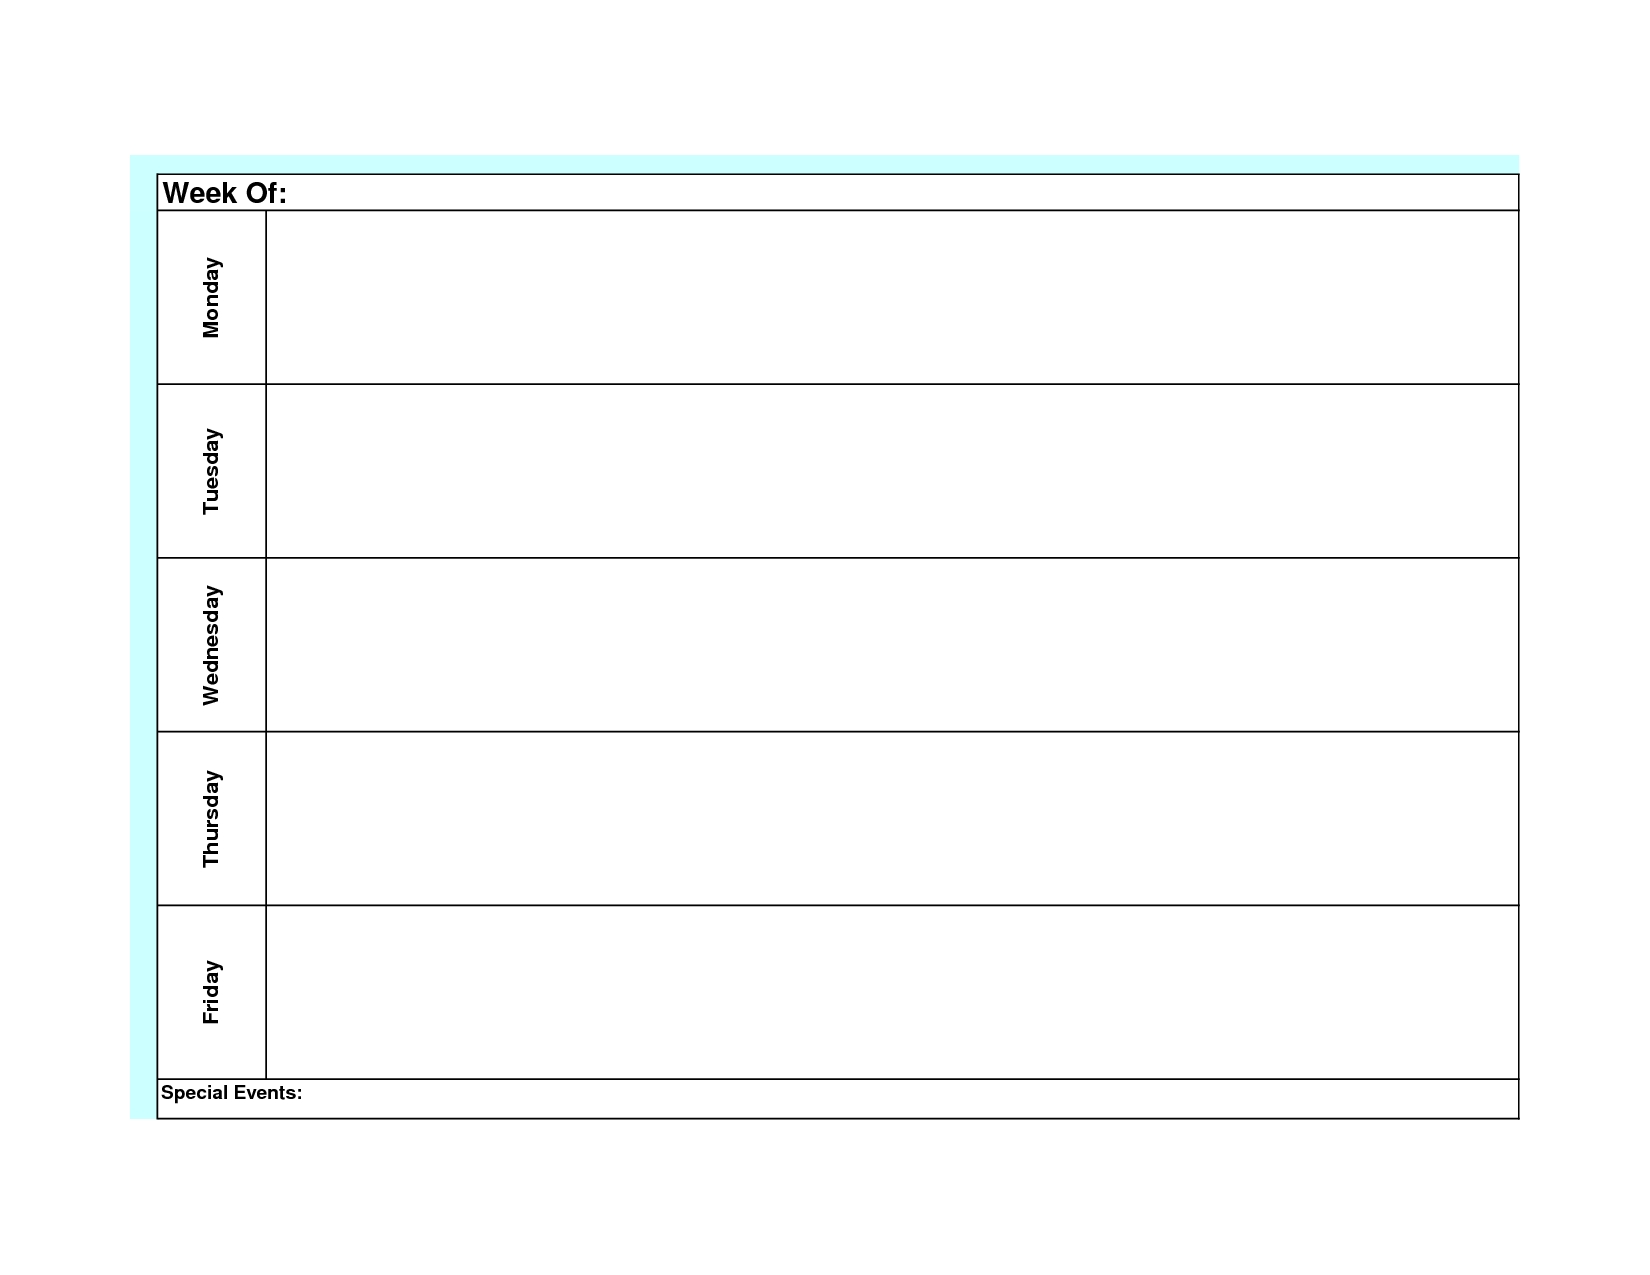 Blank Weekly Calendar Monday Through Friday Template Planner To | Smorad within Monday To Friday Planner Template